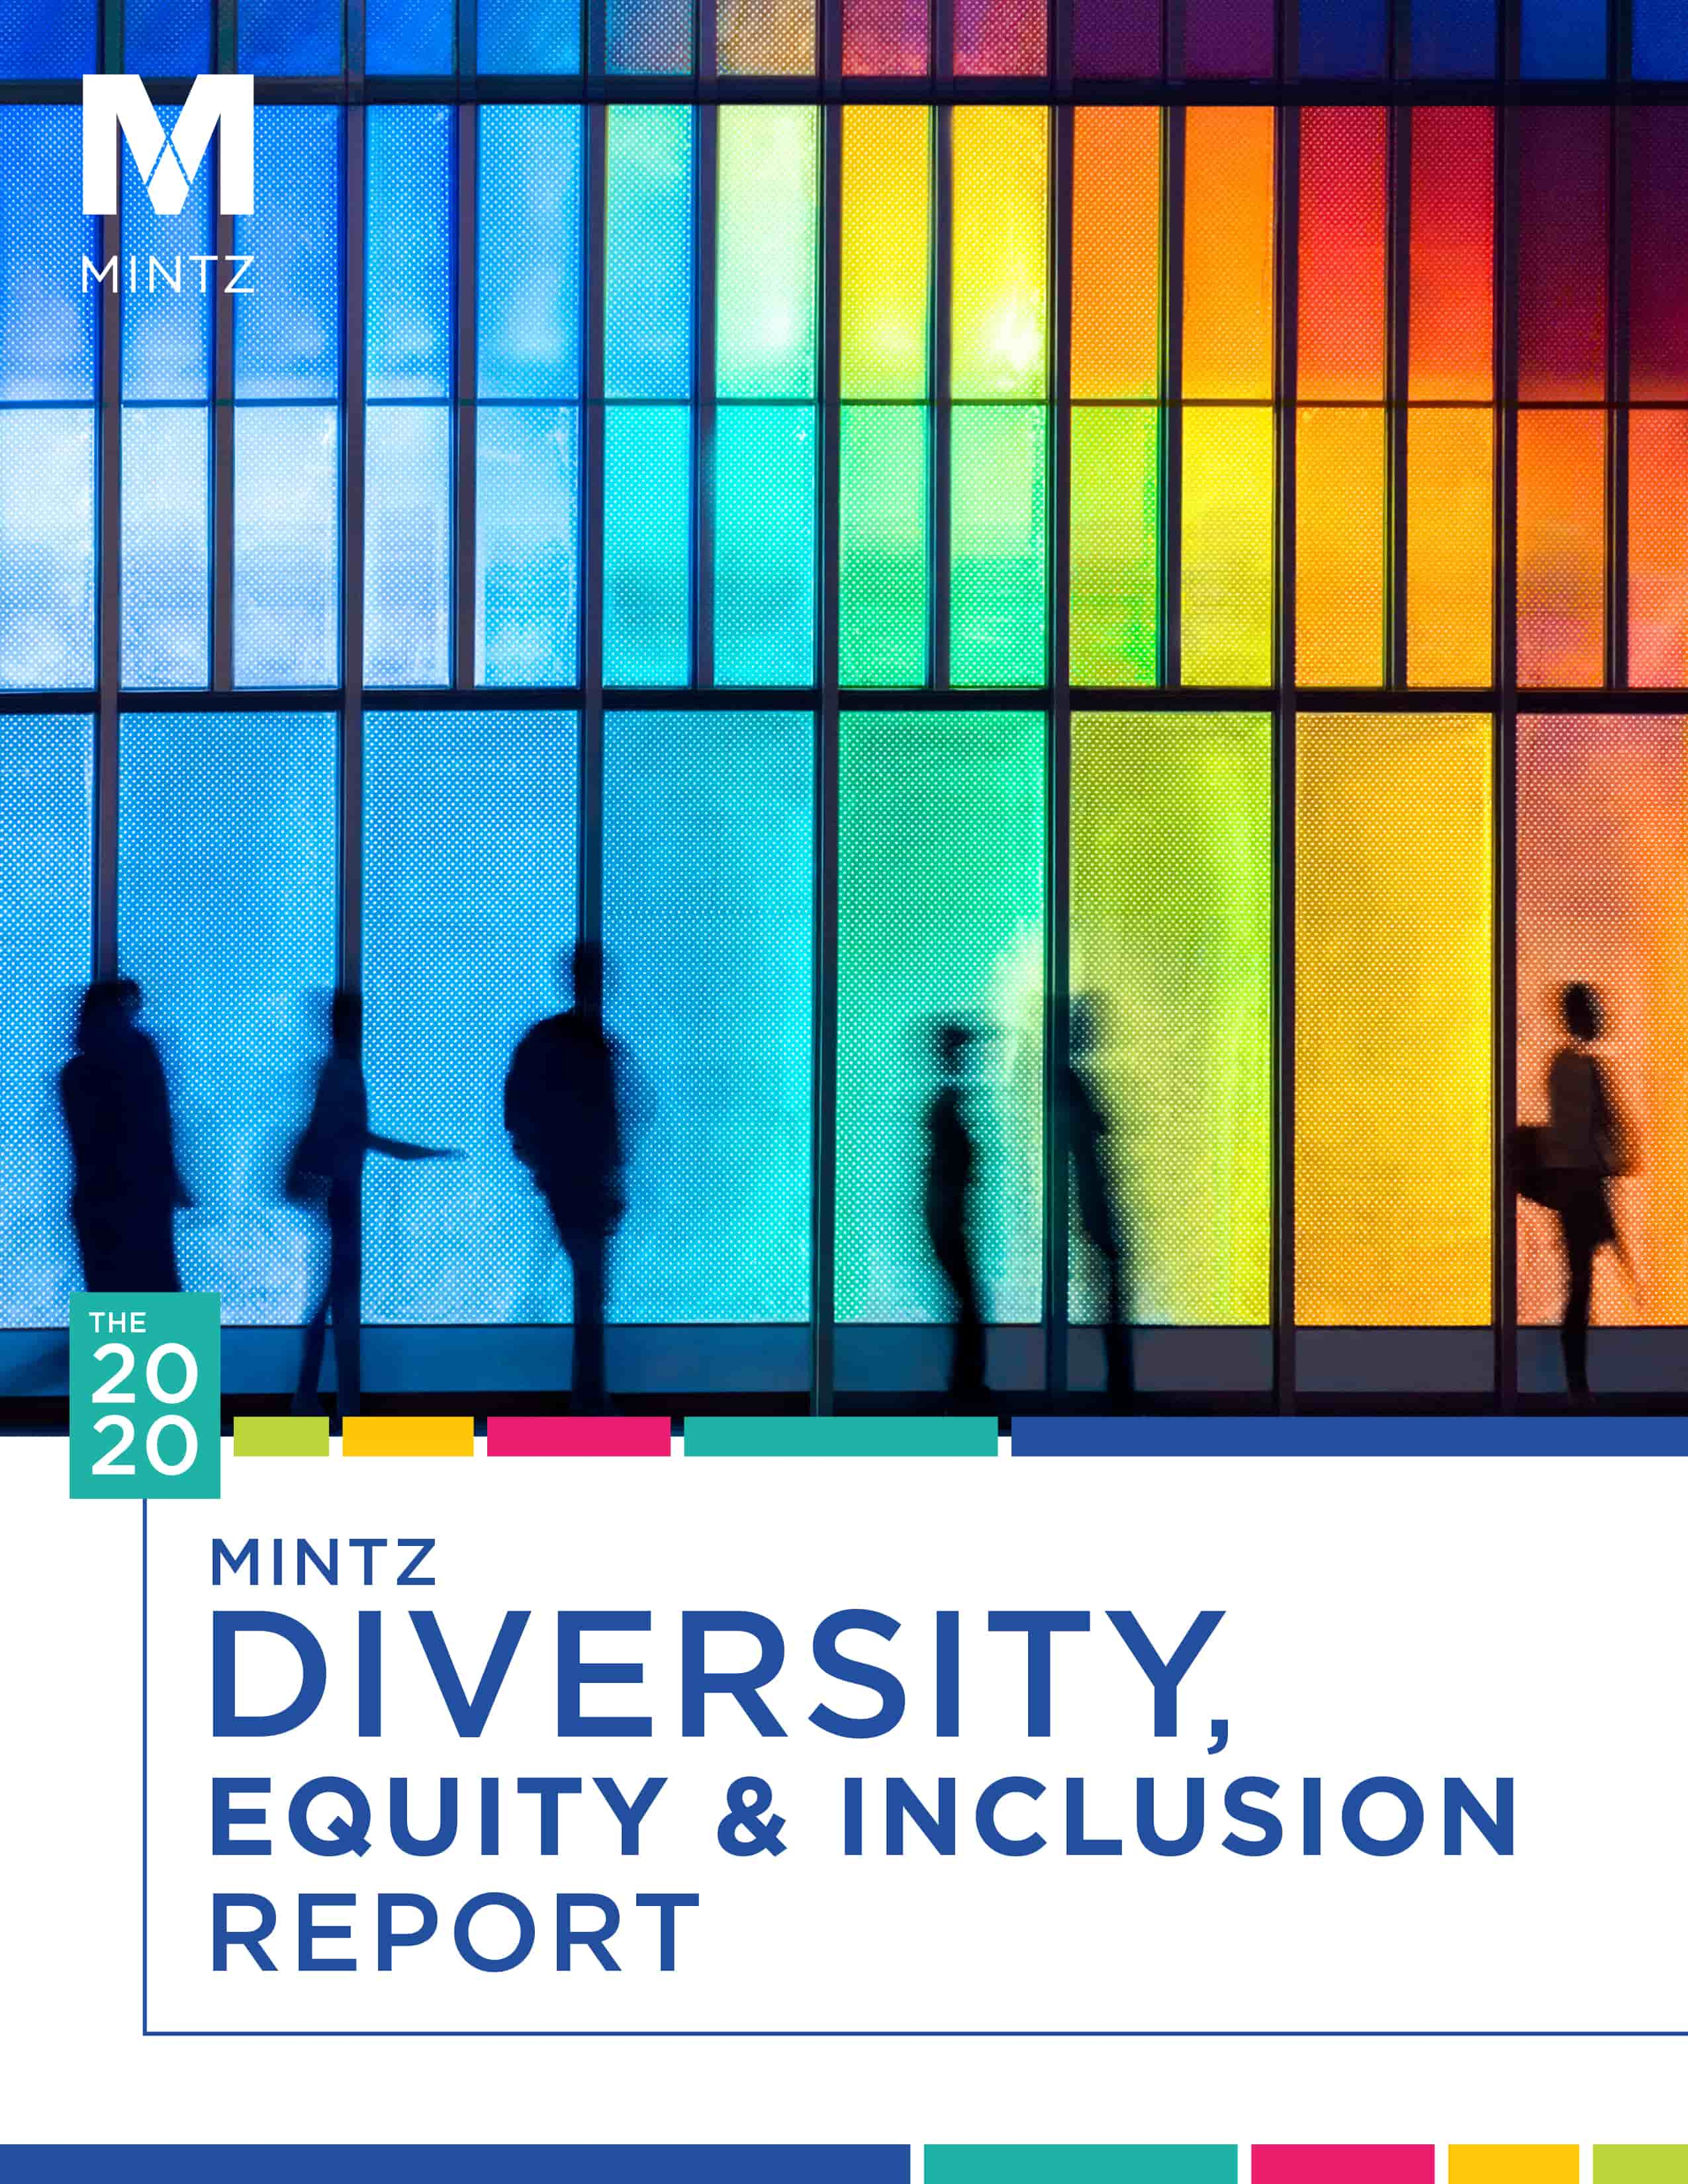 Diversity, Equity & Inclusion 2021 Report